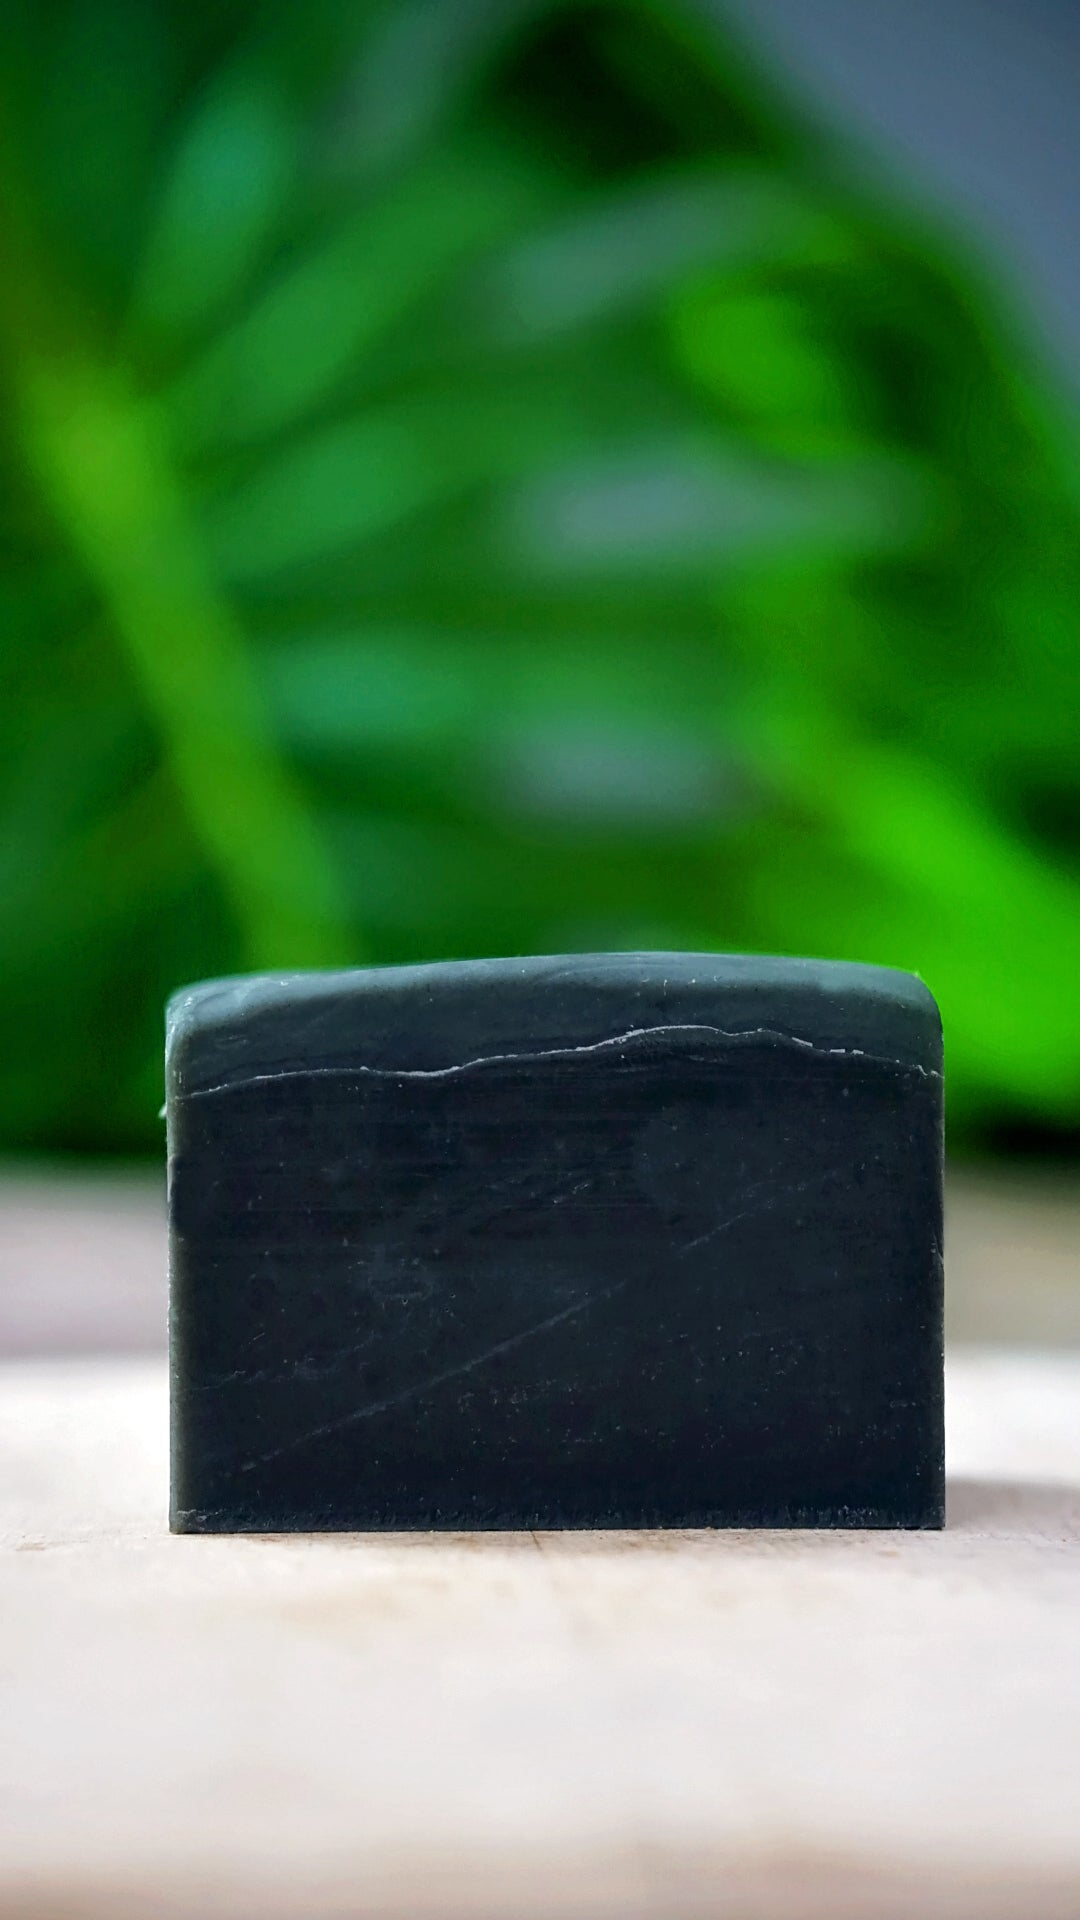 CHARCOAL AND CLAY - CDF Skin Care - Charcoal Soap -  Oily, acne and combination skin